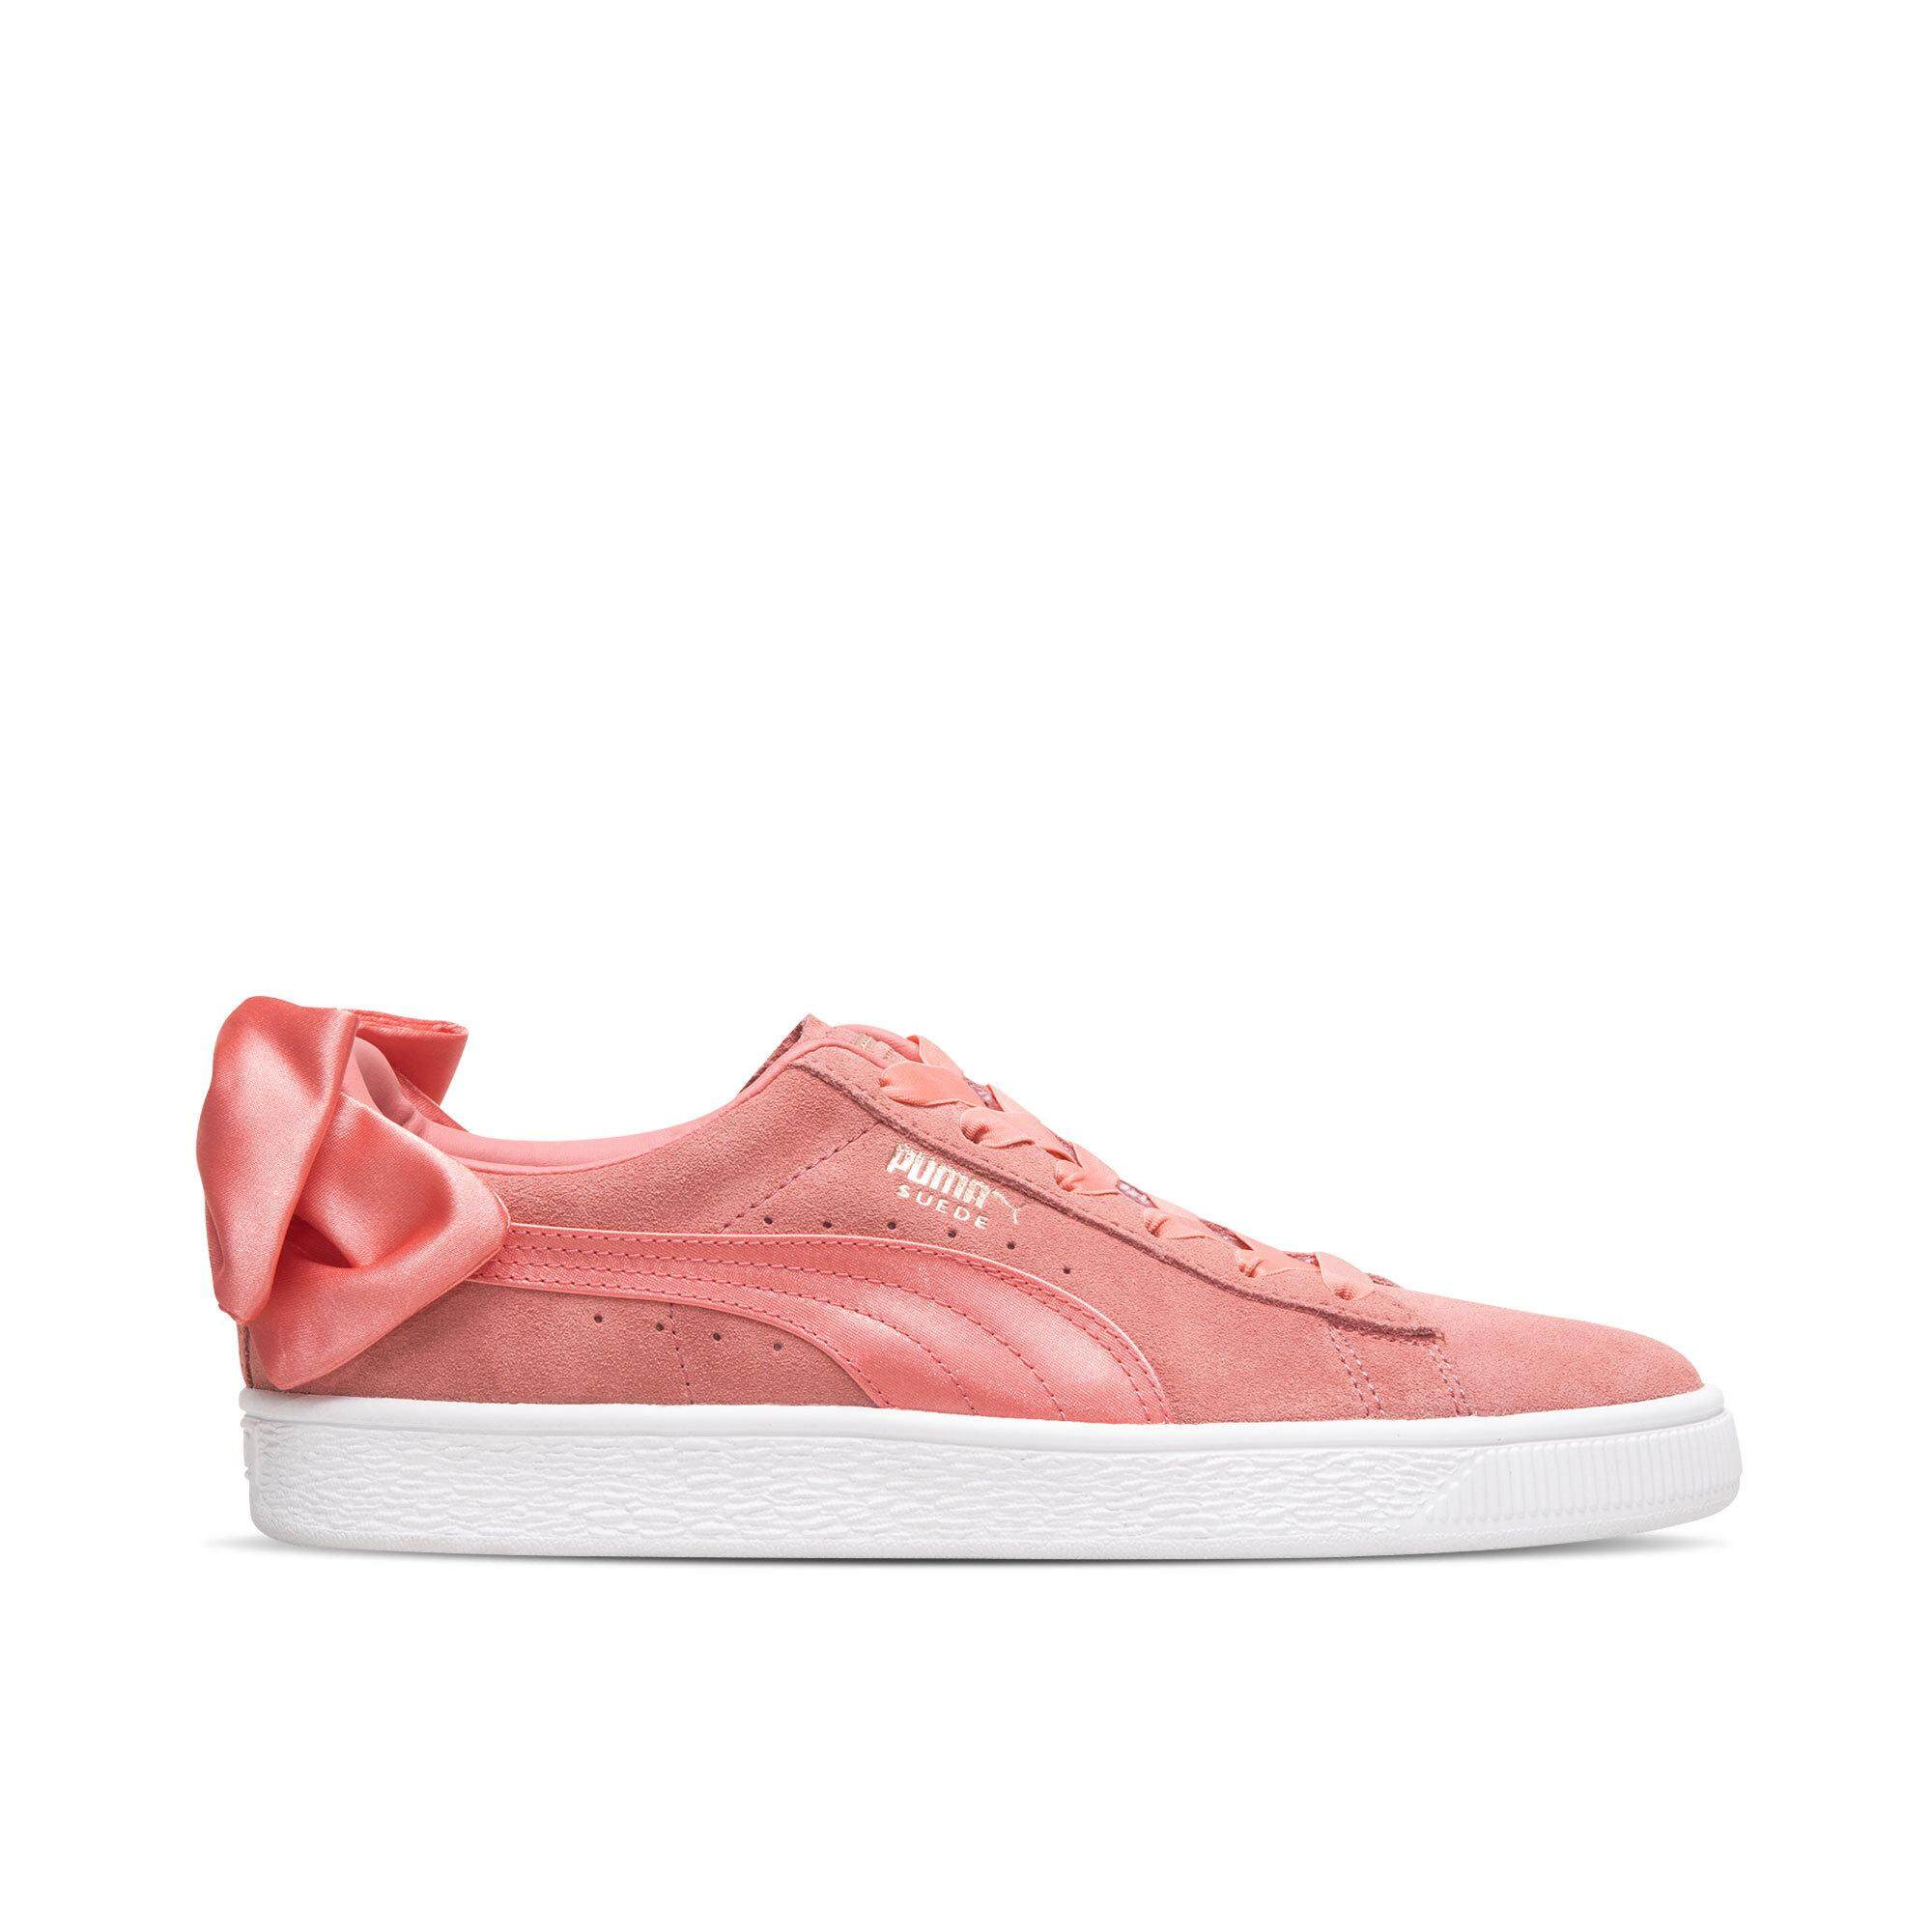 PUMA Puma Shoppe Women s Shoes Athletic Shoes 2018 Summer New Style Bow  Leisure Low Top 58eb60e97